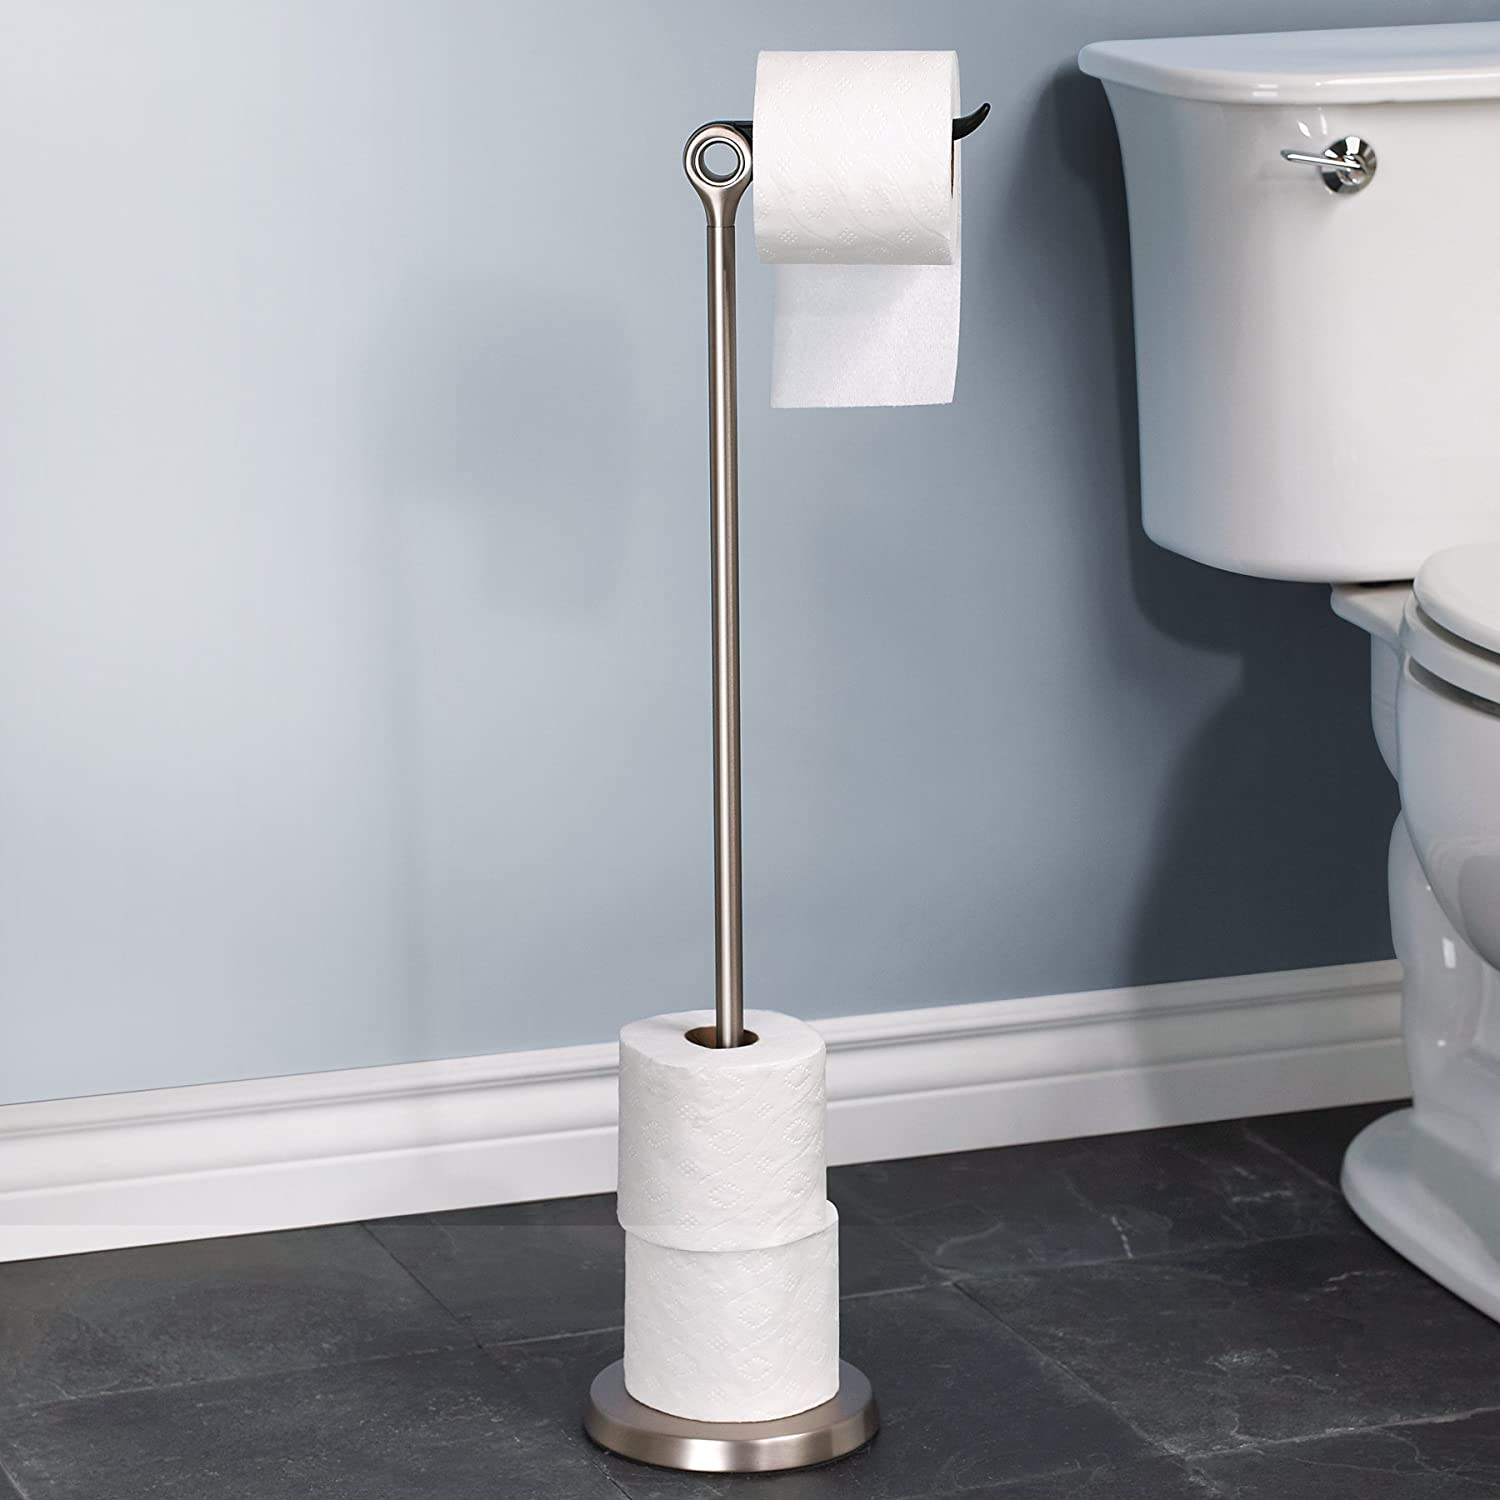 Amazon.com: Umbra Tucan Toilet Paper Stand with Reserve, Brushed ...